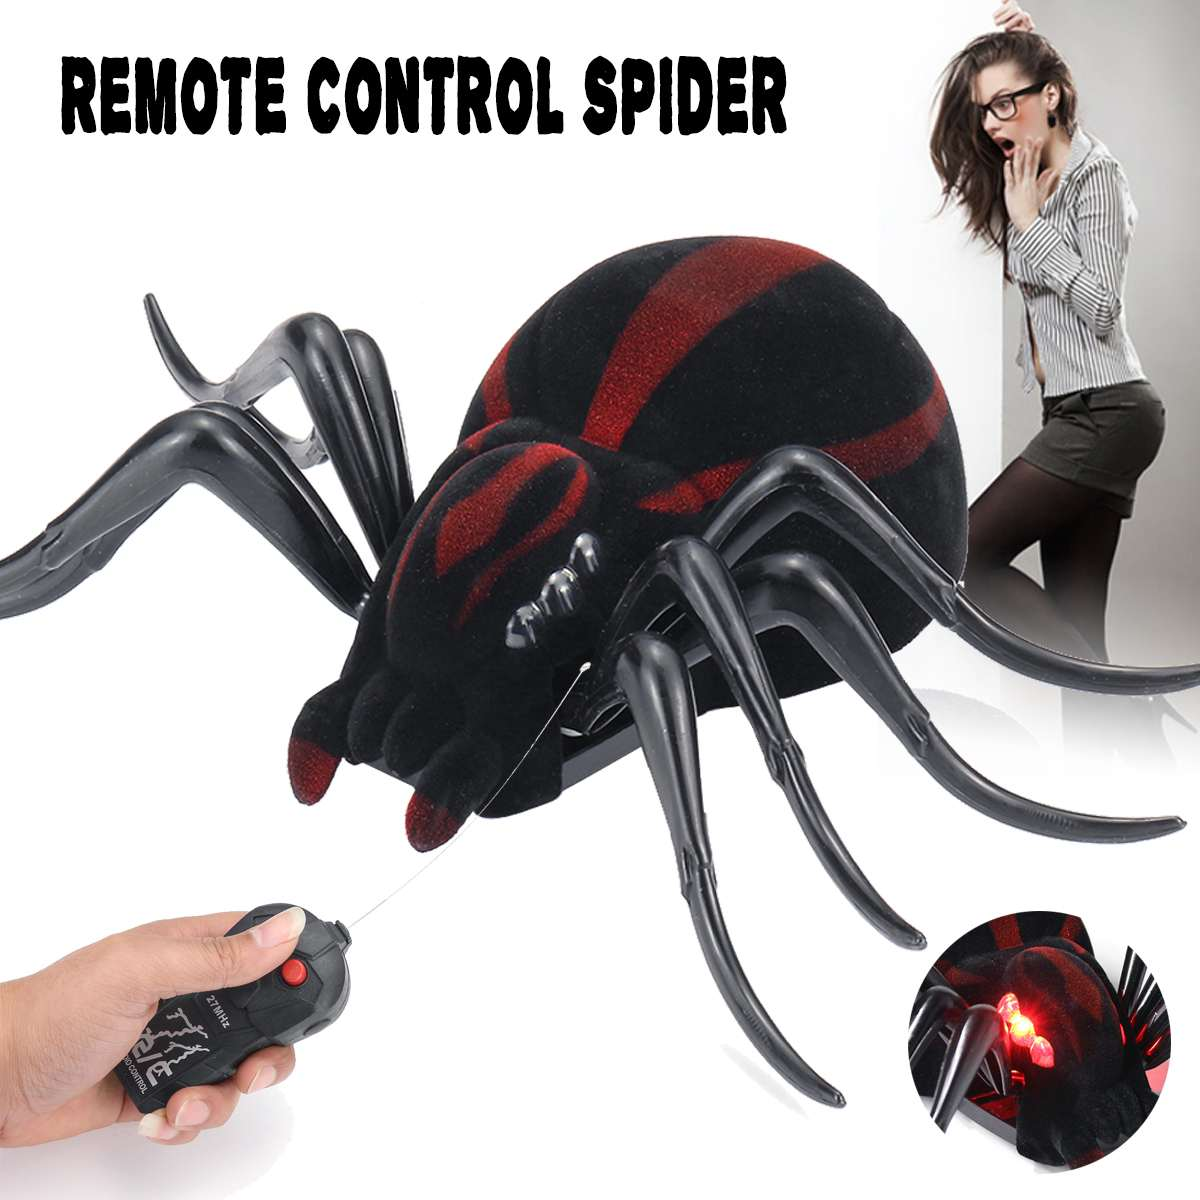 Electronic Pets Infrared Remote Control Toys Mock Fake Cockroach Rc Prank Insect Joke Scary Trick Bugs For Party Joke Practice Entertainment P37 Products Are Sold Without Limitations